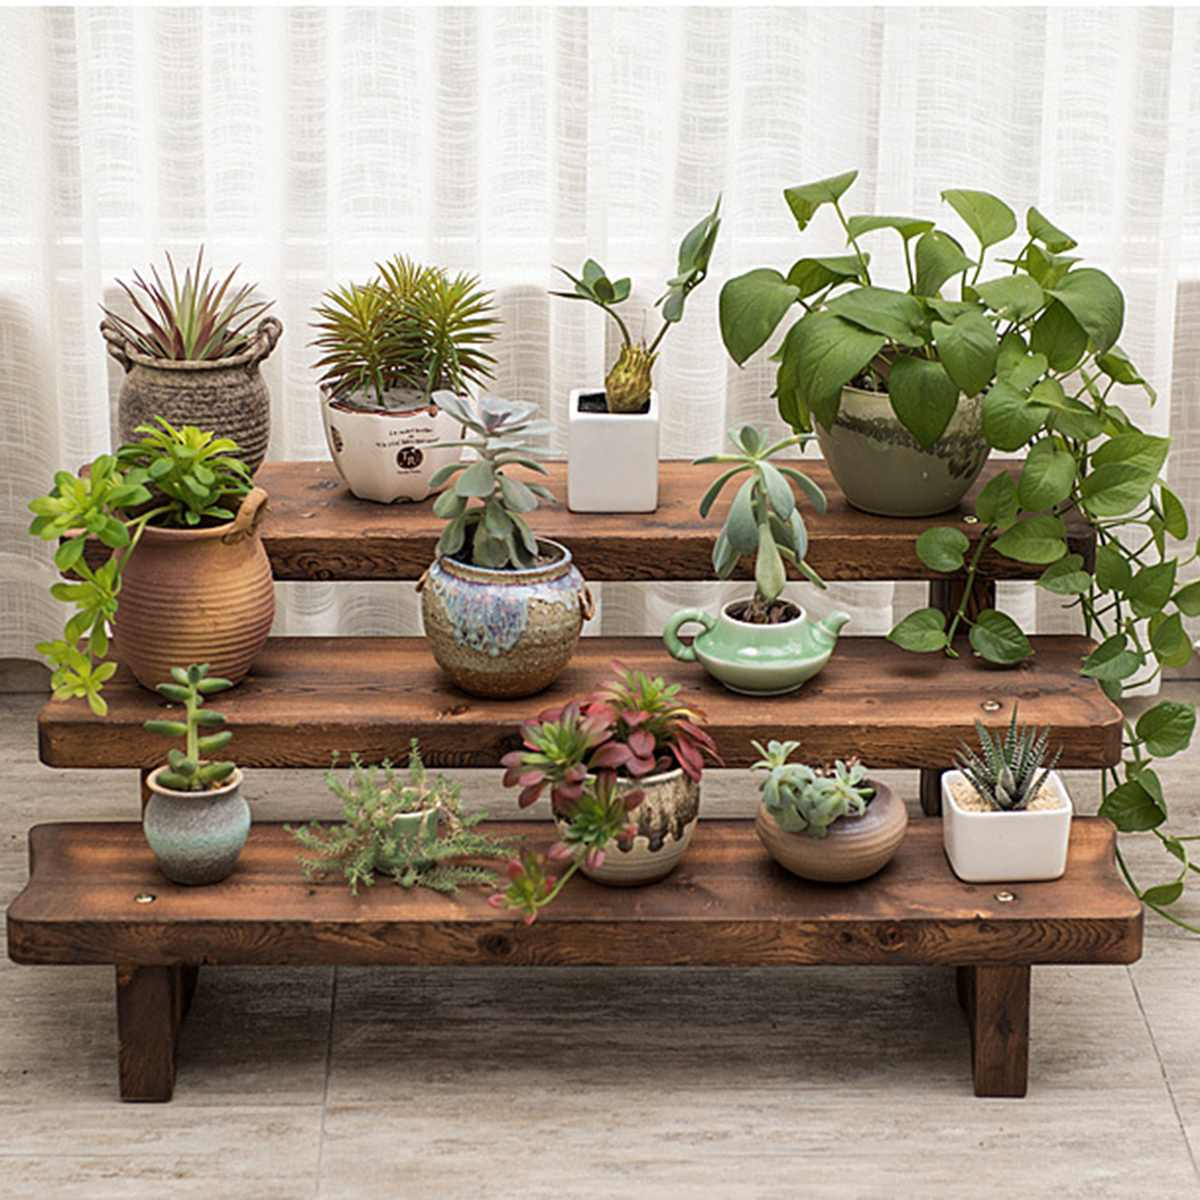 Carbonized Wood Damp-proof Antiseptic Flower Rack Multi-layer Plant Stand Shelves Garden Patio Balcony Planting Tools